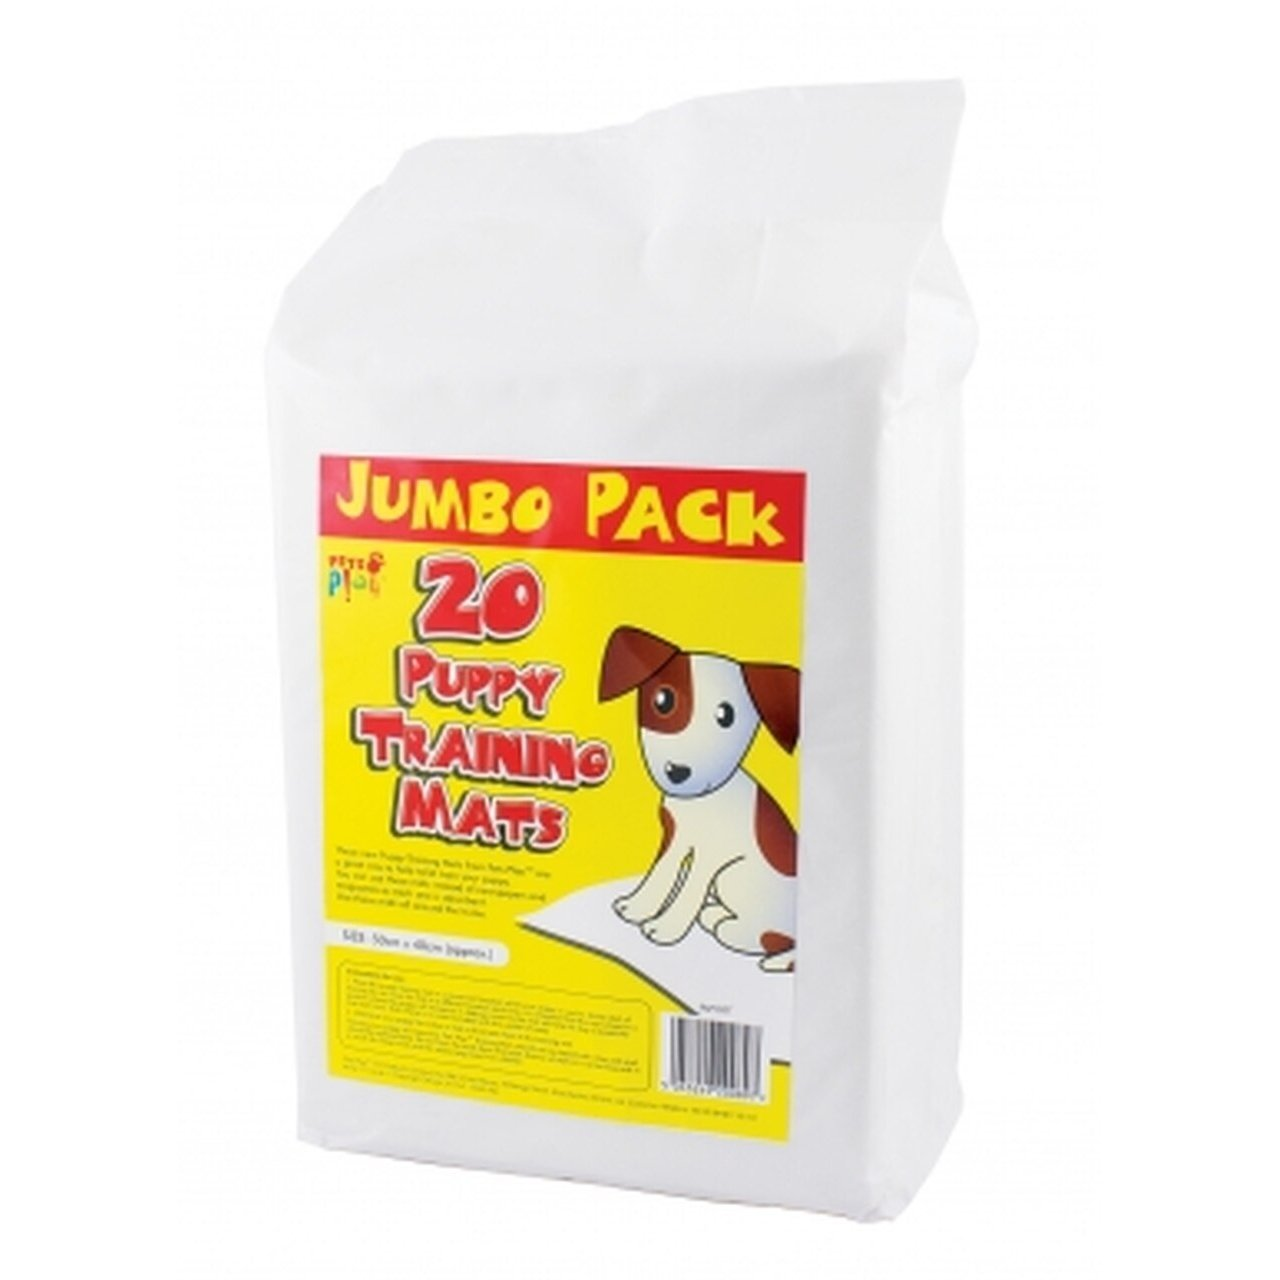 Pack of 20 Puppy Training Mats